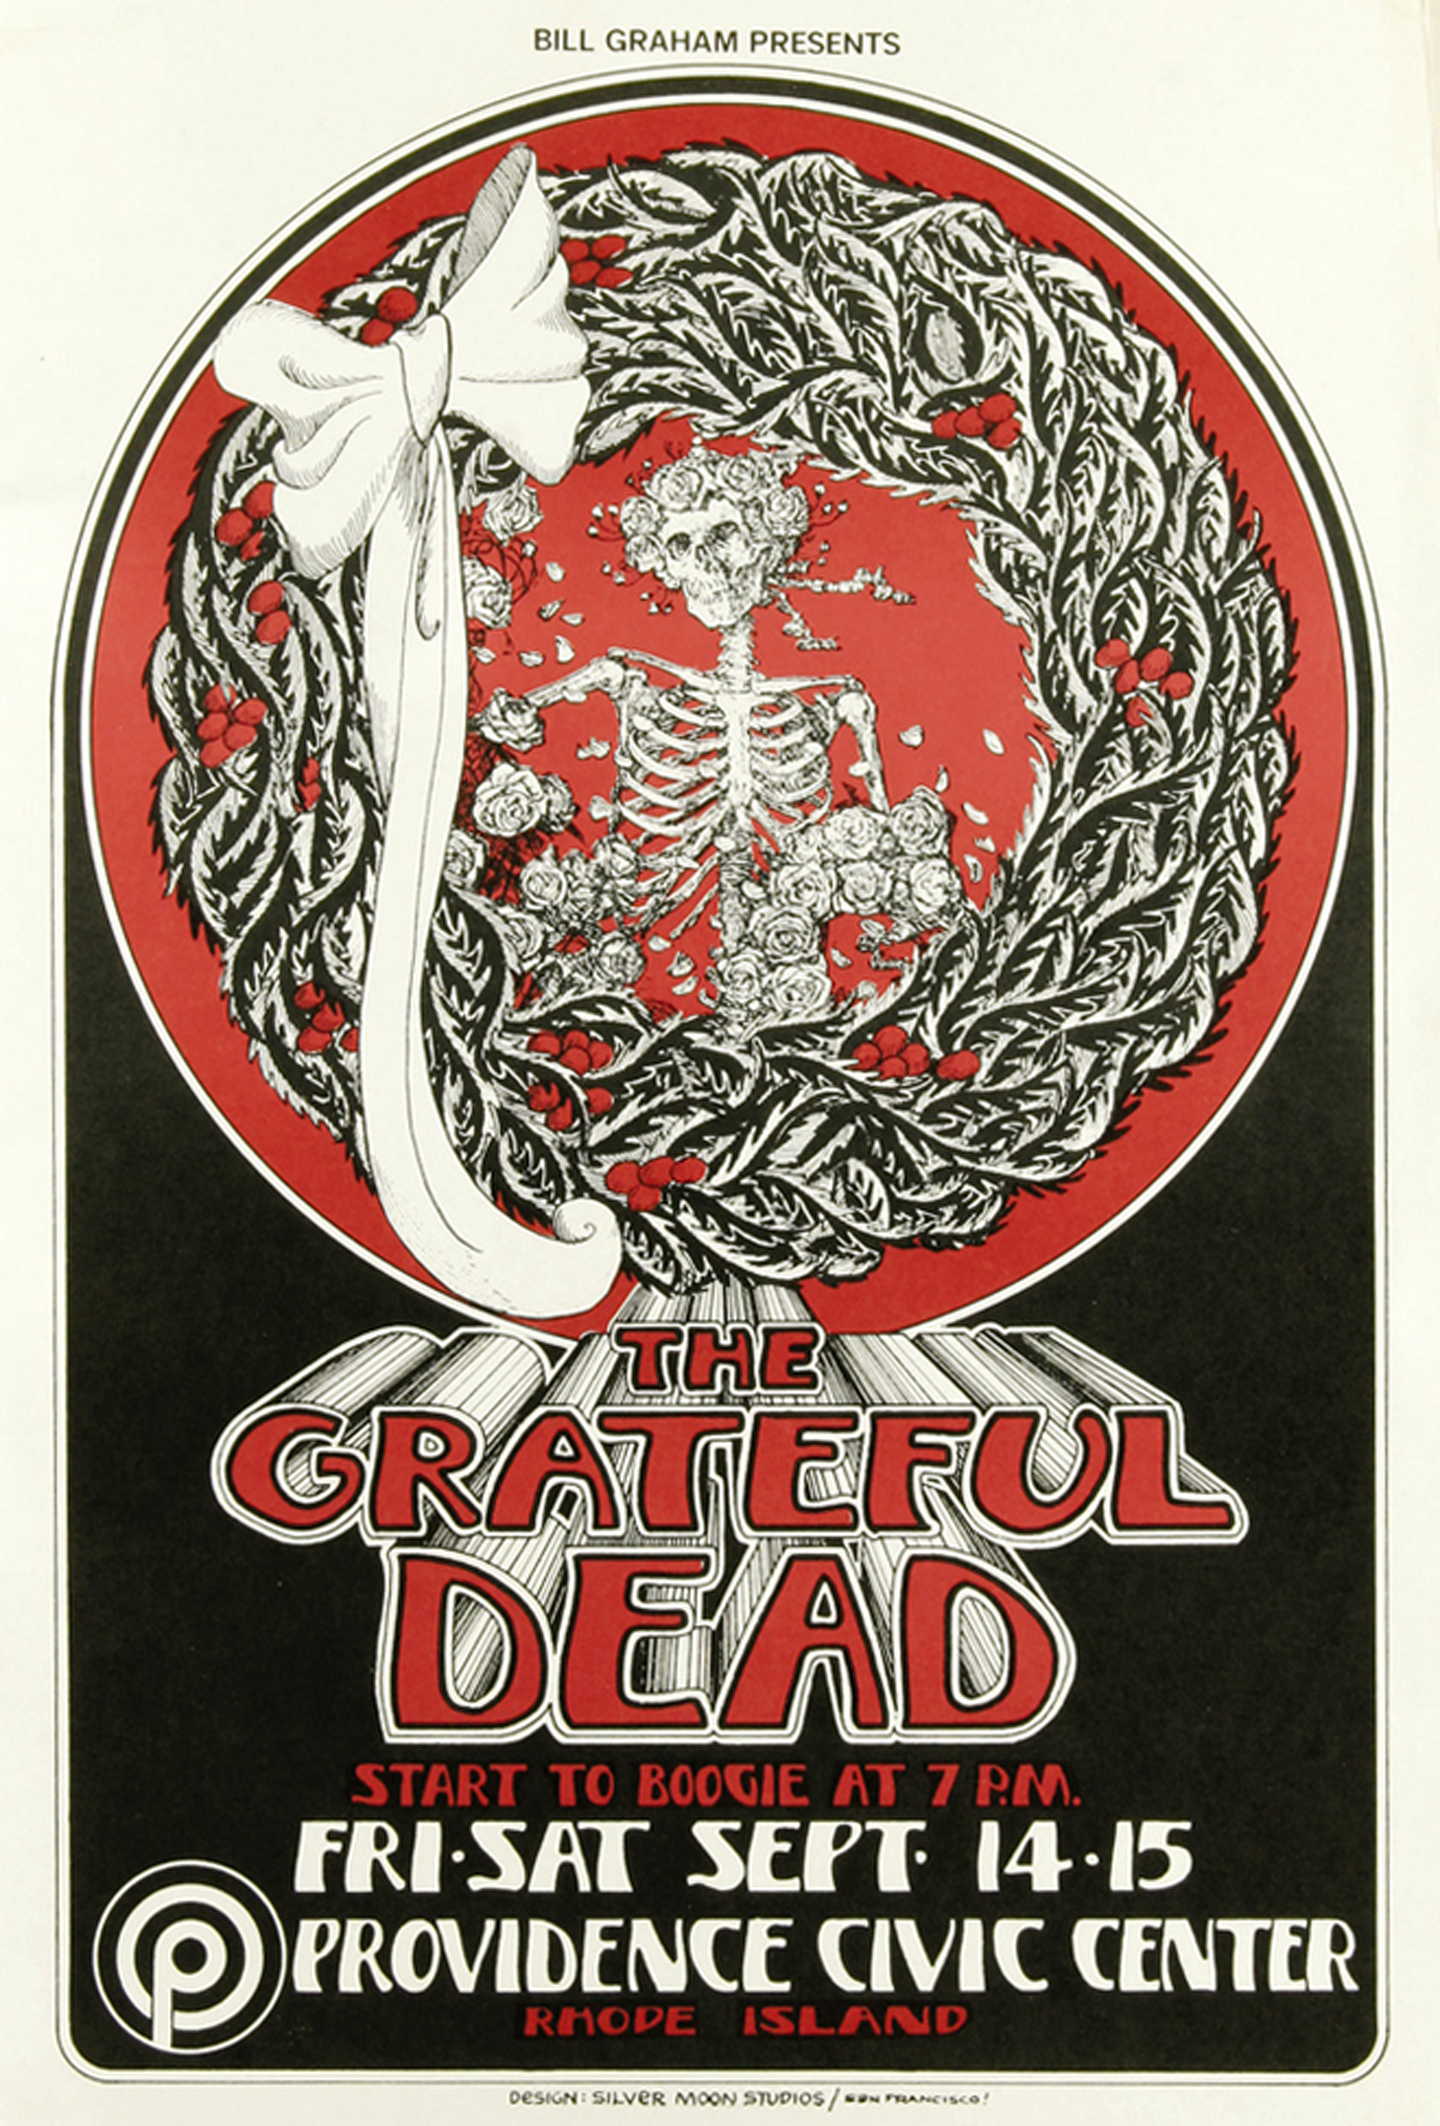 Grateful Dead Providence Civic Center Concert 1973